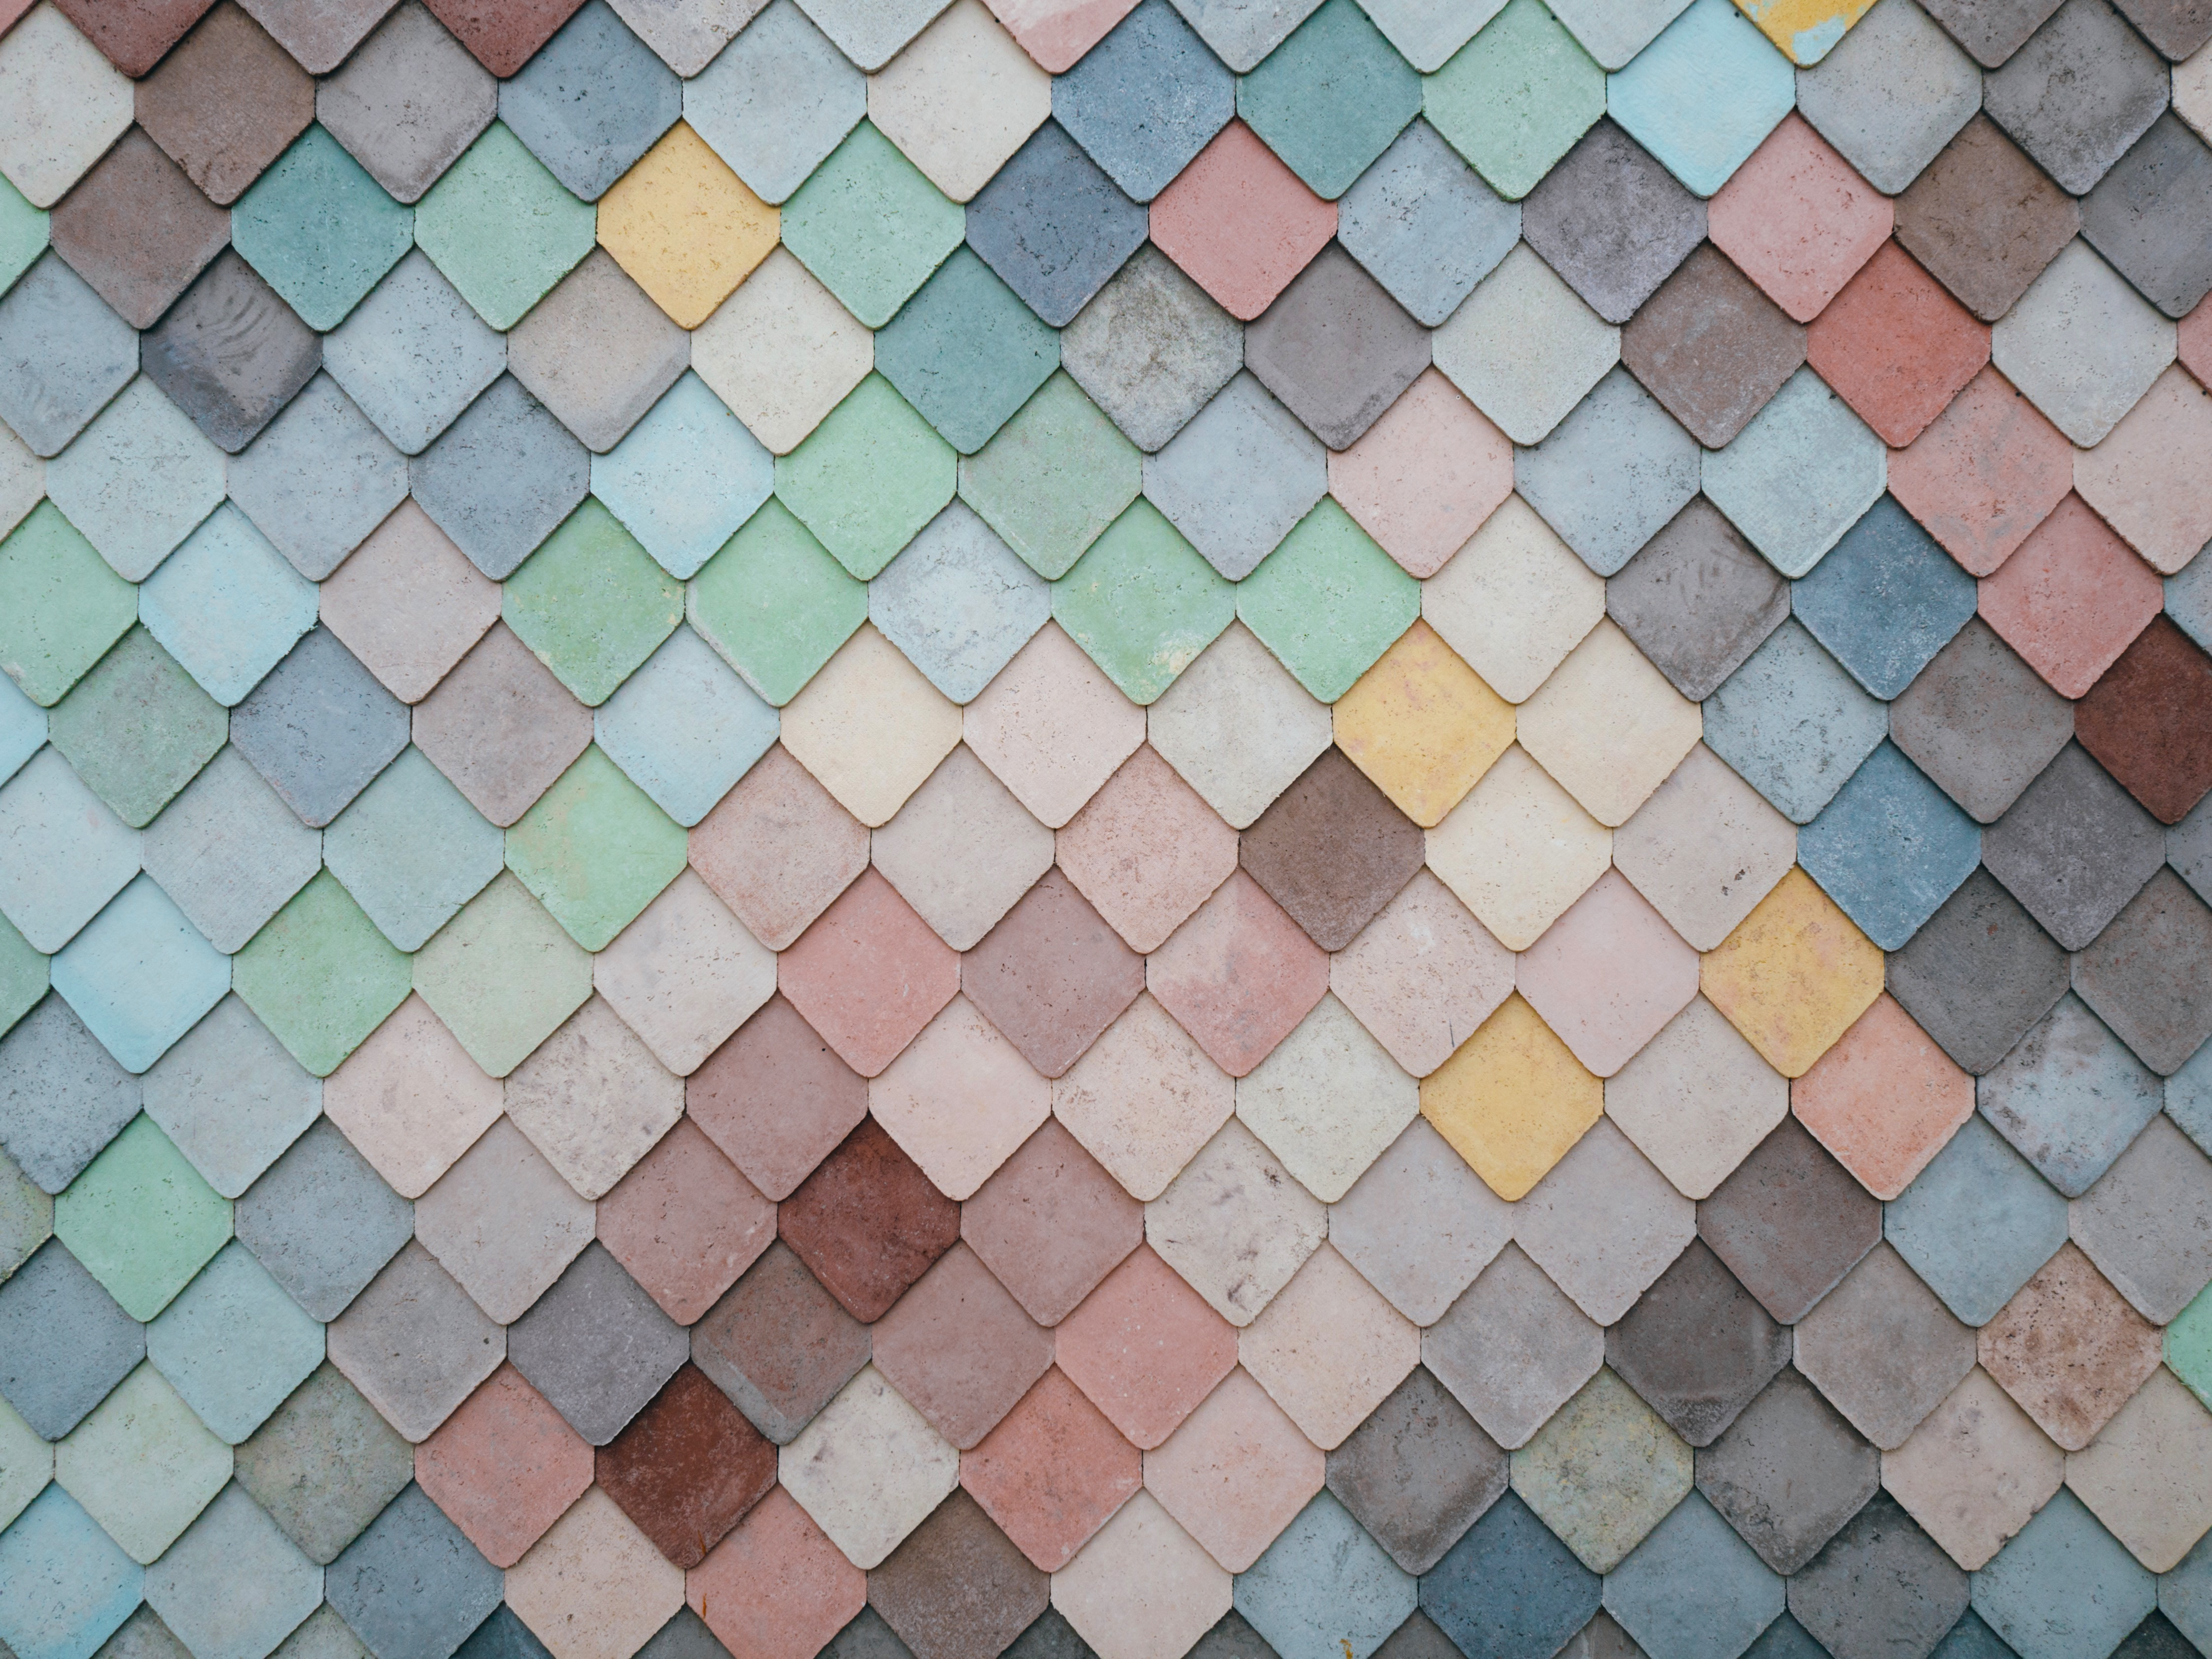 Tile Pattern. Versailles Tile Pattern And Guides - Itook.co